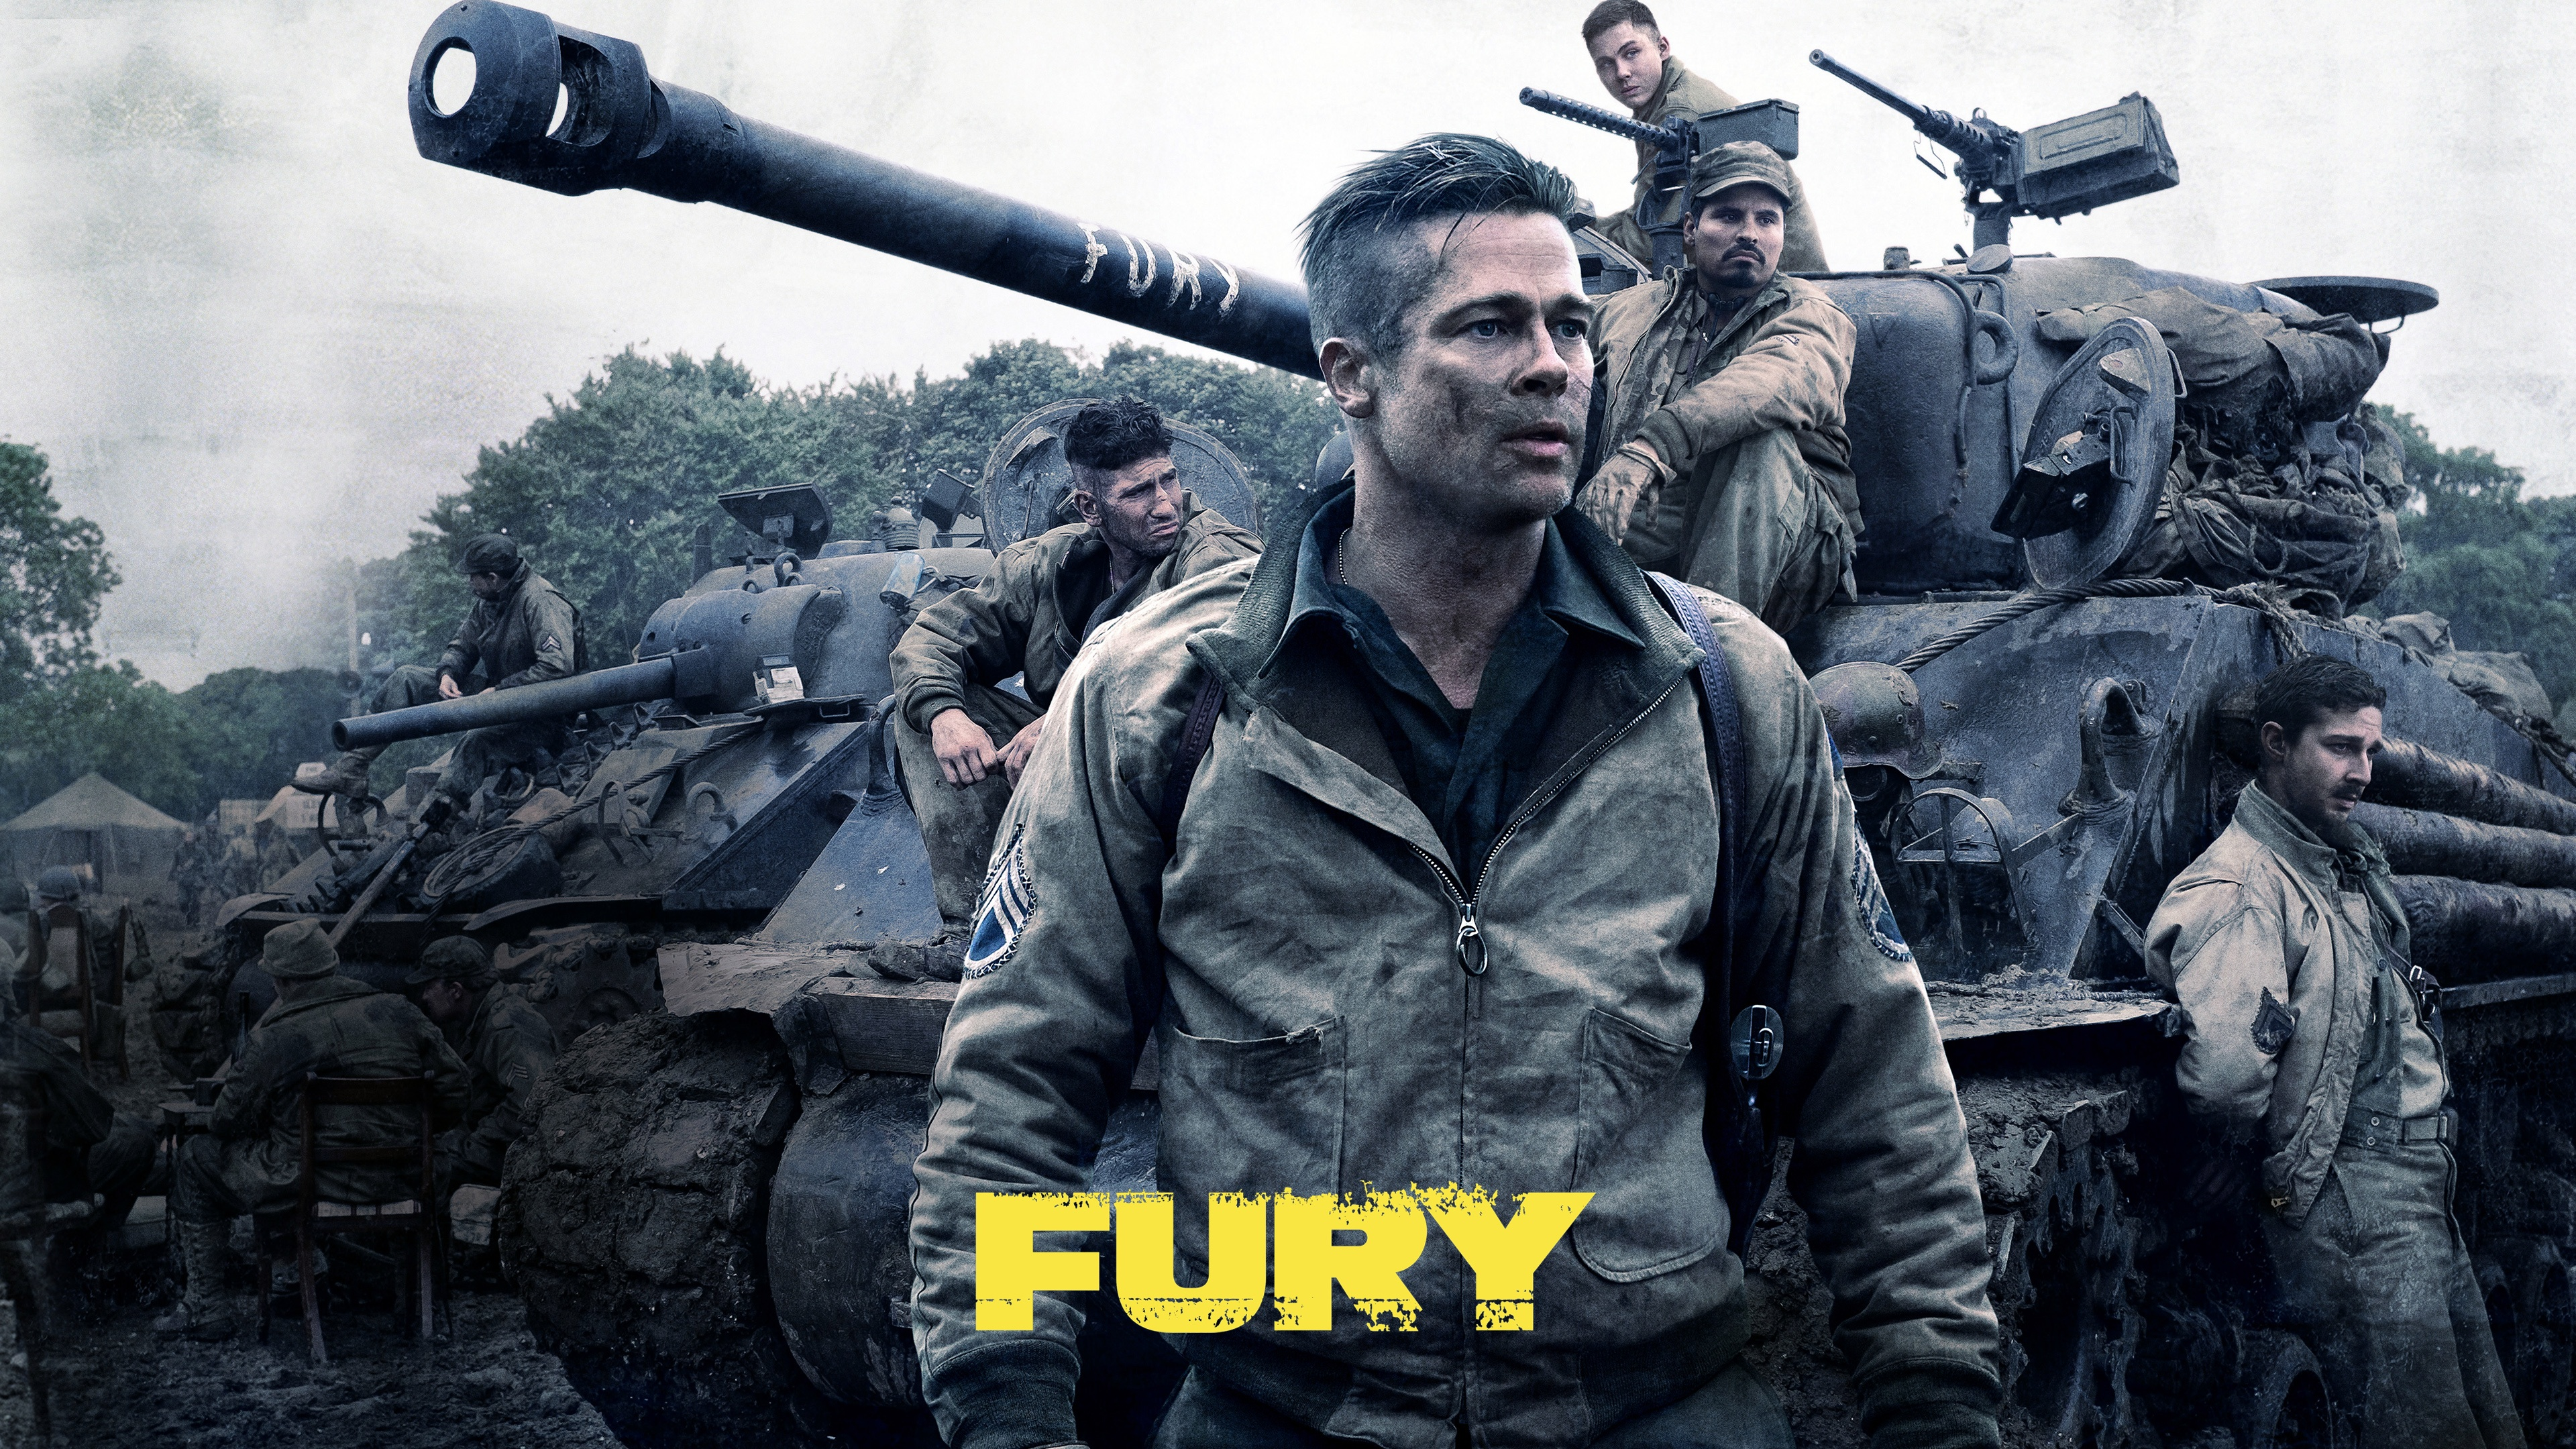 Fury Movie Wallpapers HD Wallpapers 3840x2160